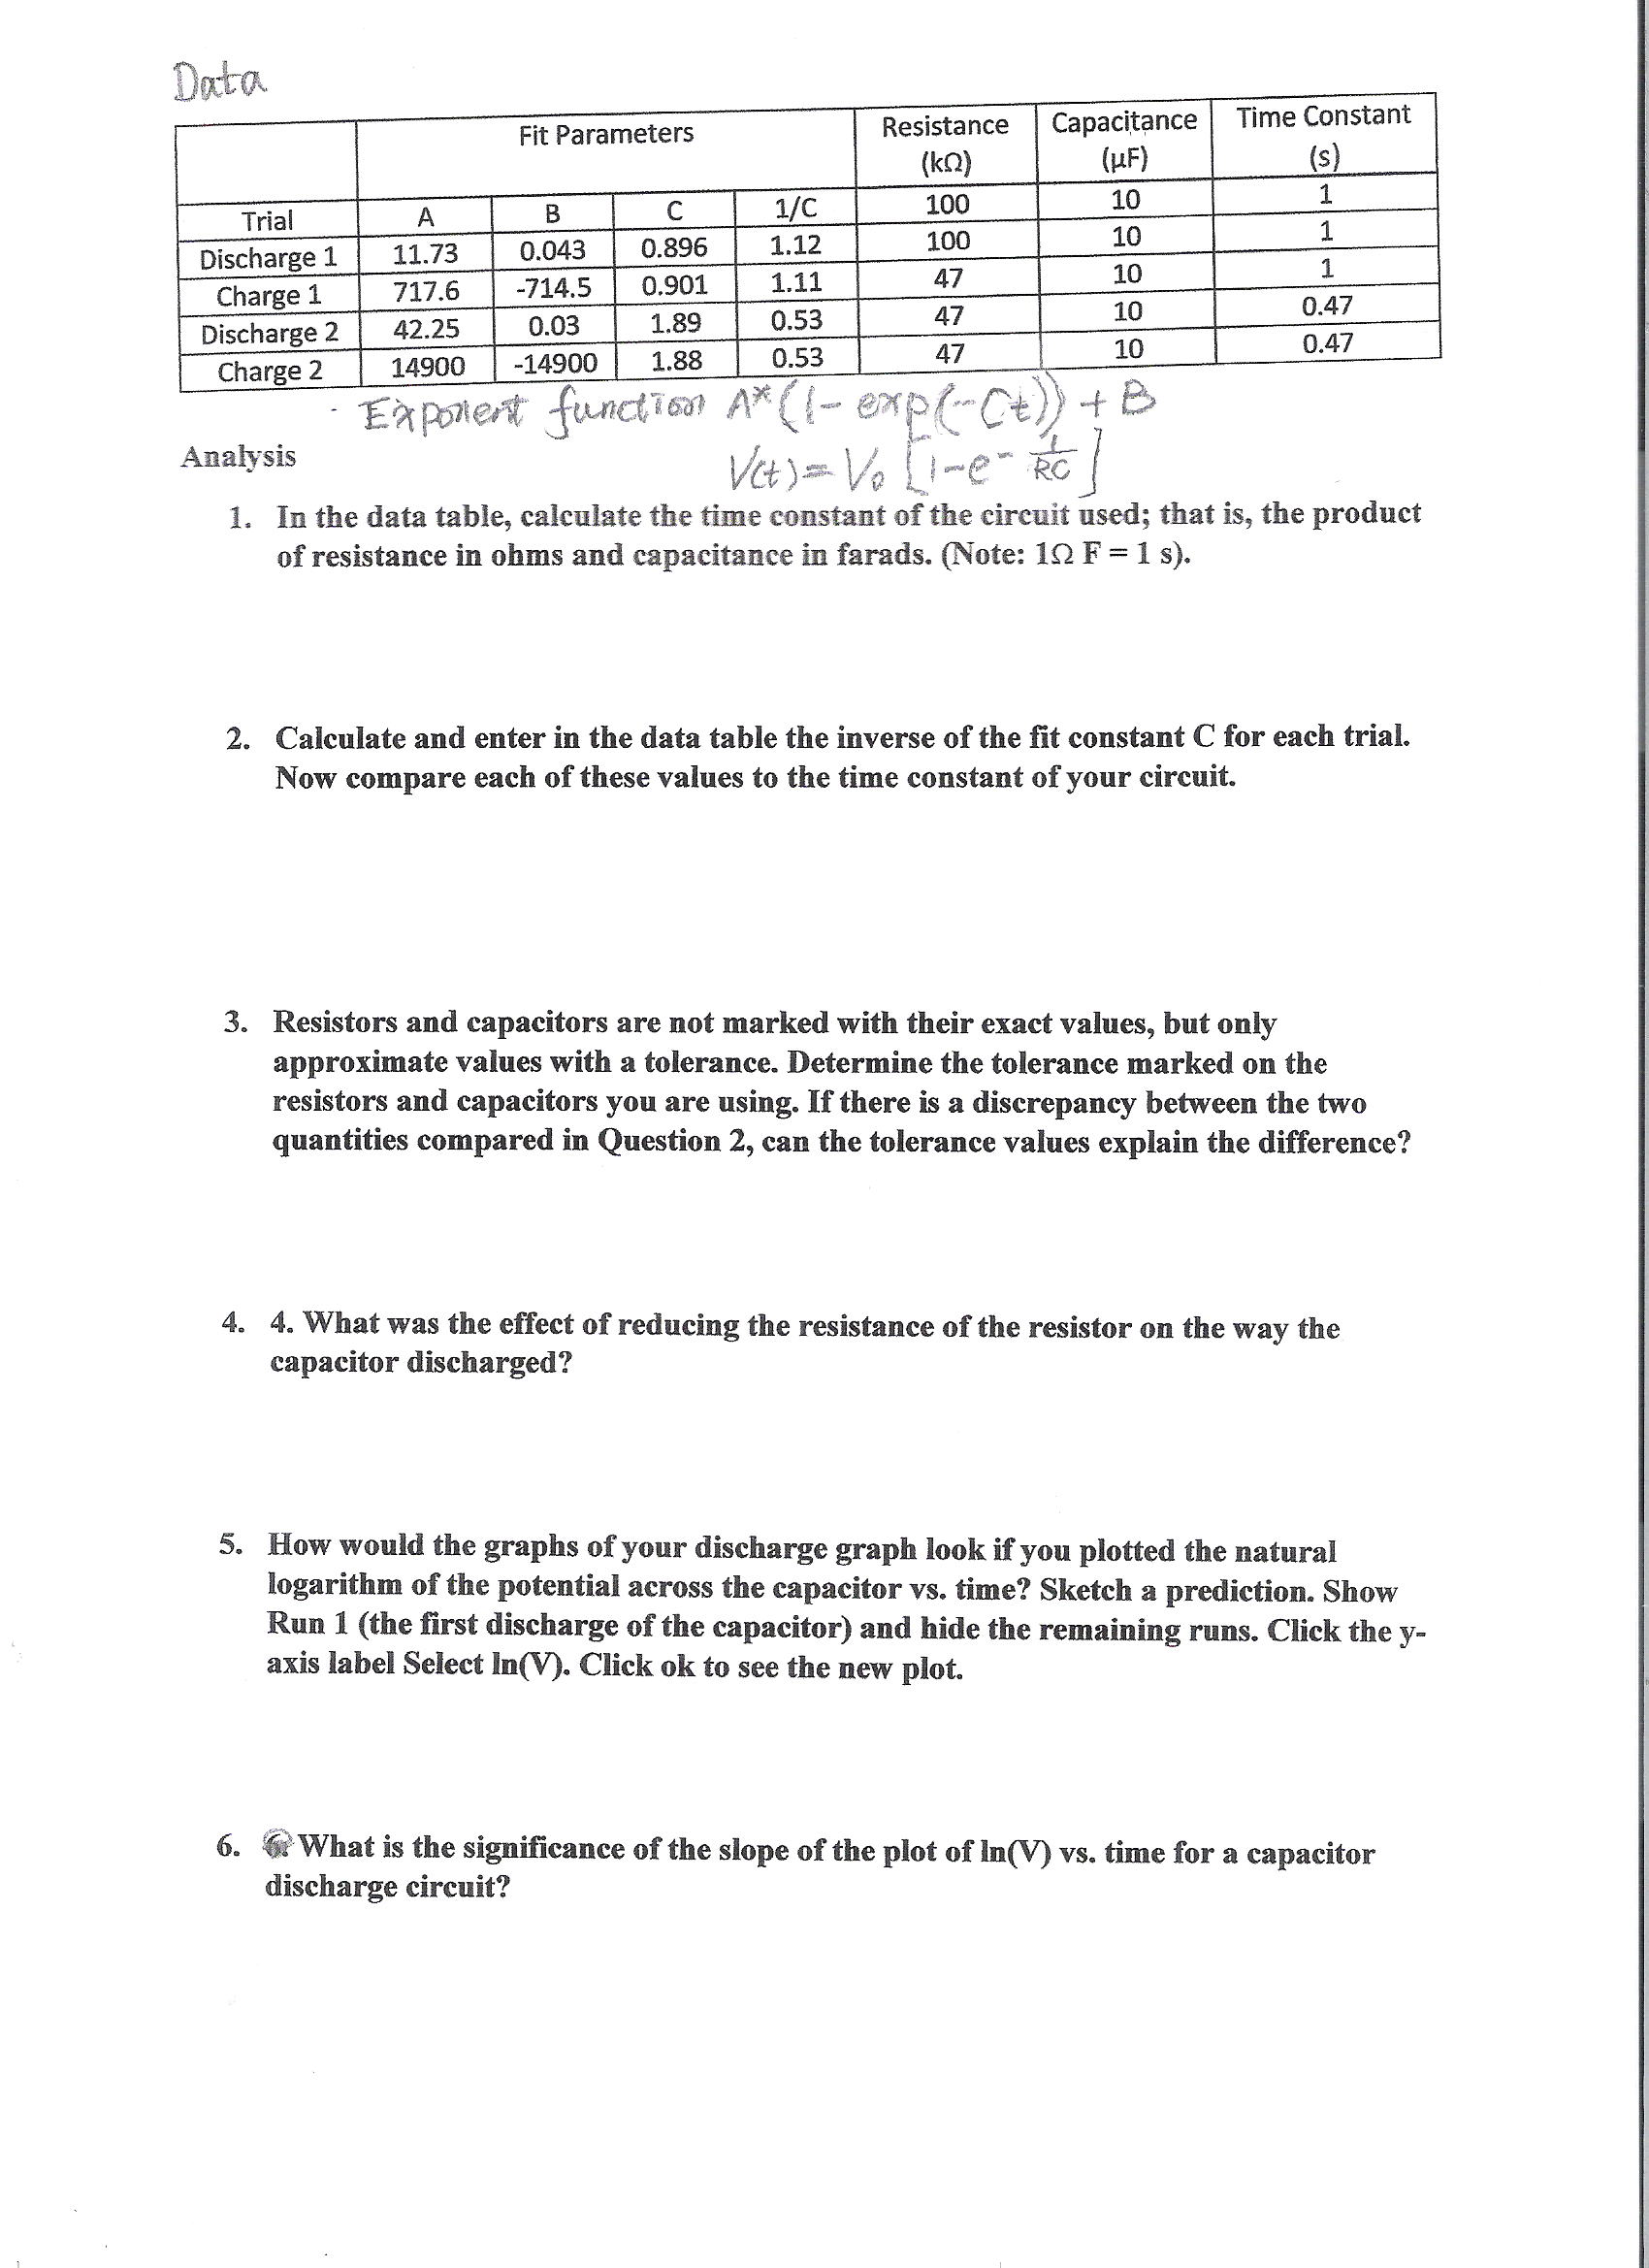 Exponent Function Ax1 Exp Et B Vt V Resistors And Capacitors In A Circuit Capacitor Question 1 E Rc The Data Table Calculate